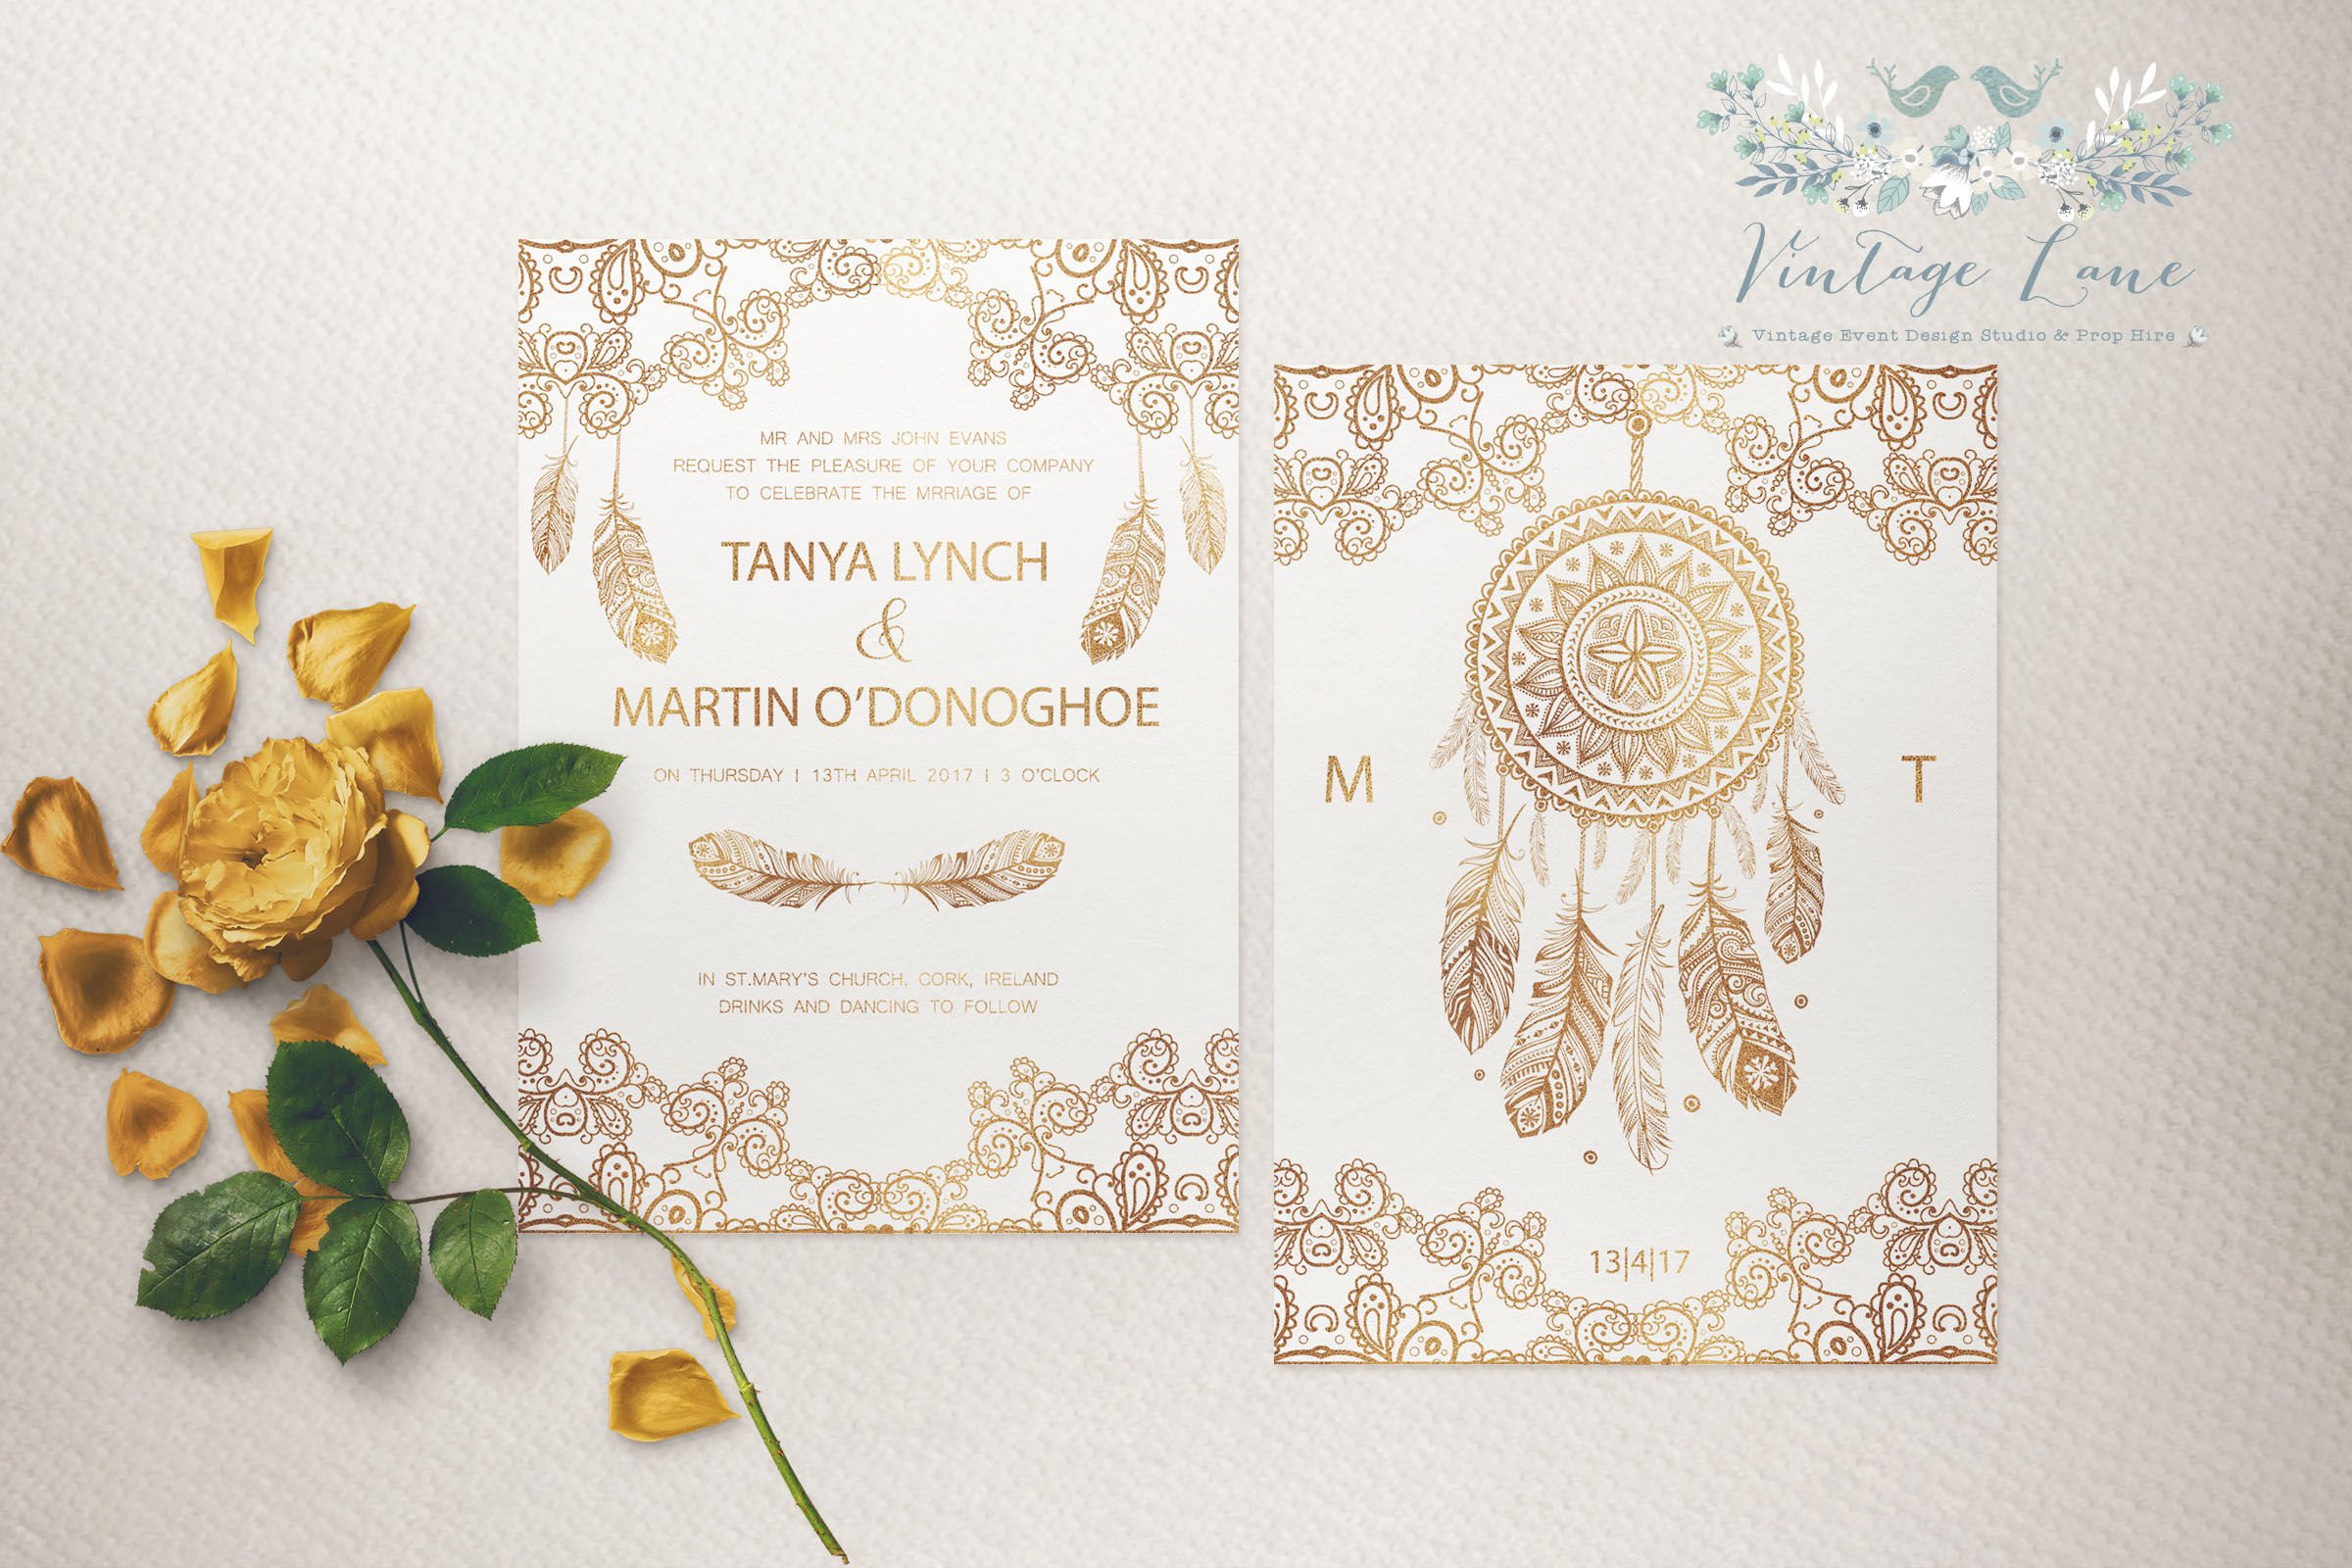 Vintage Style Wedding Invitations is great invitation design